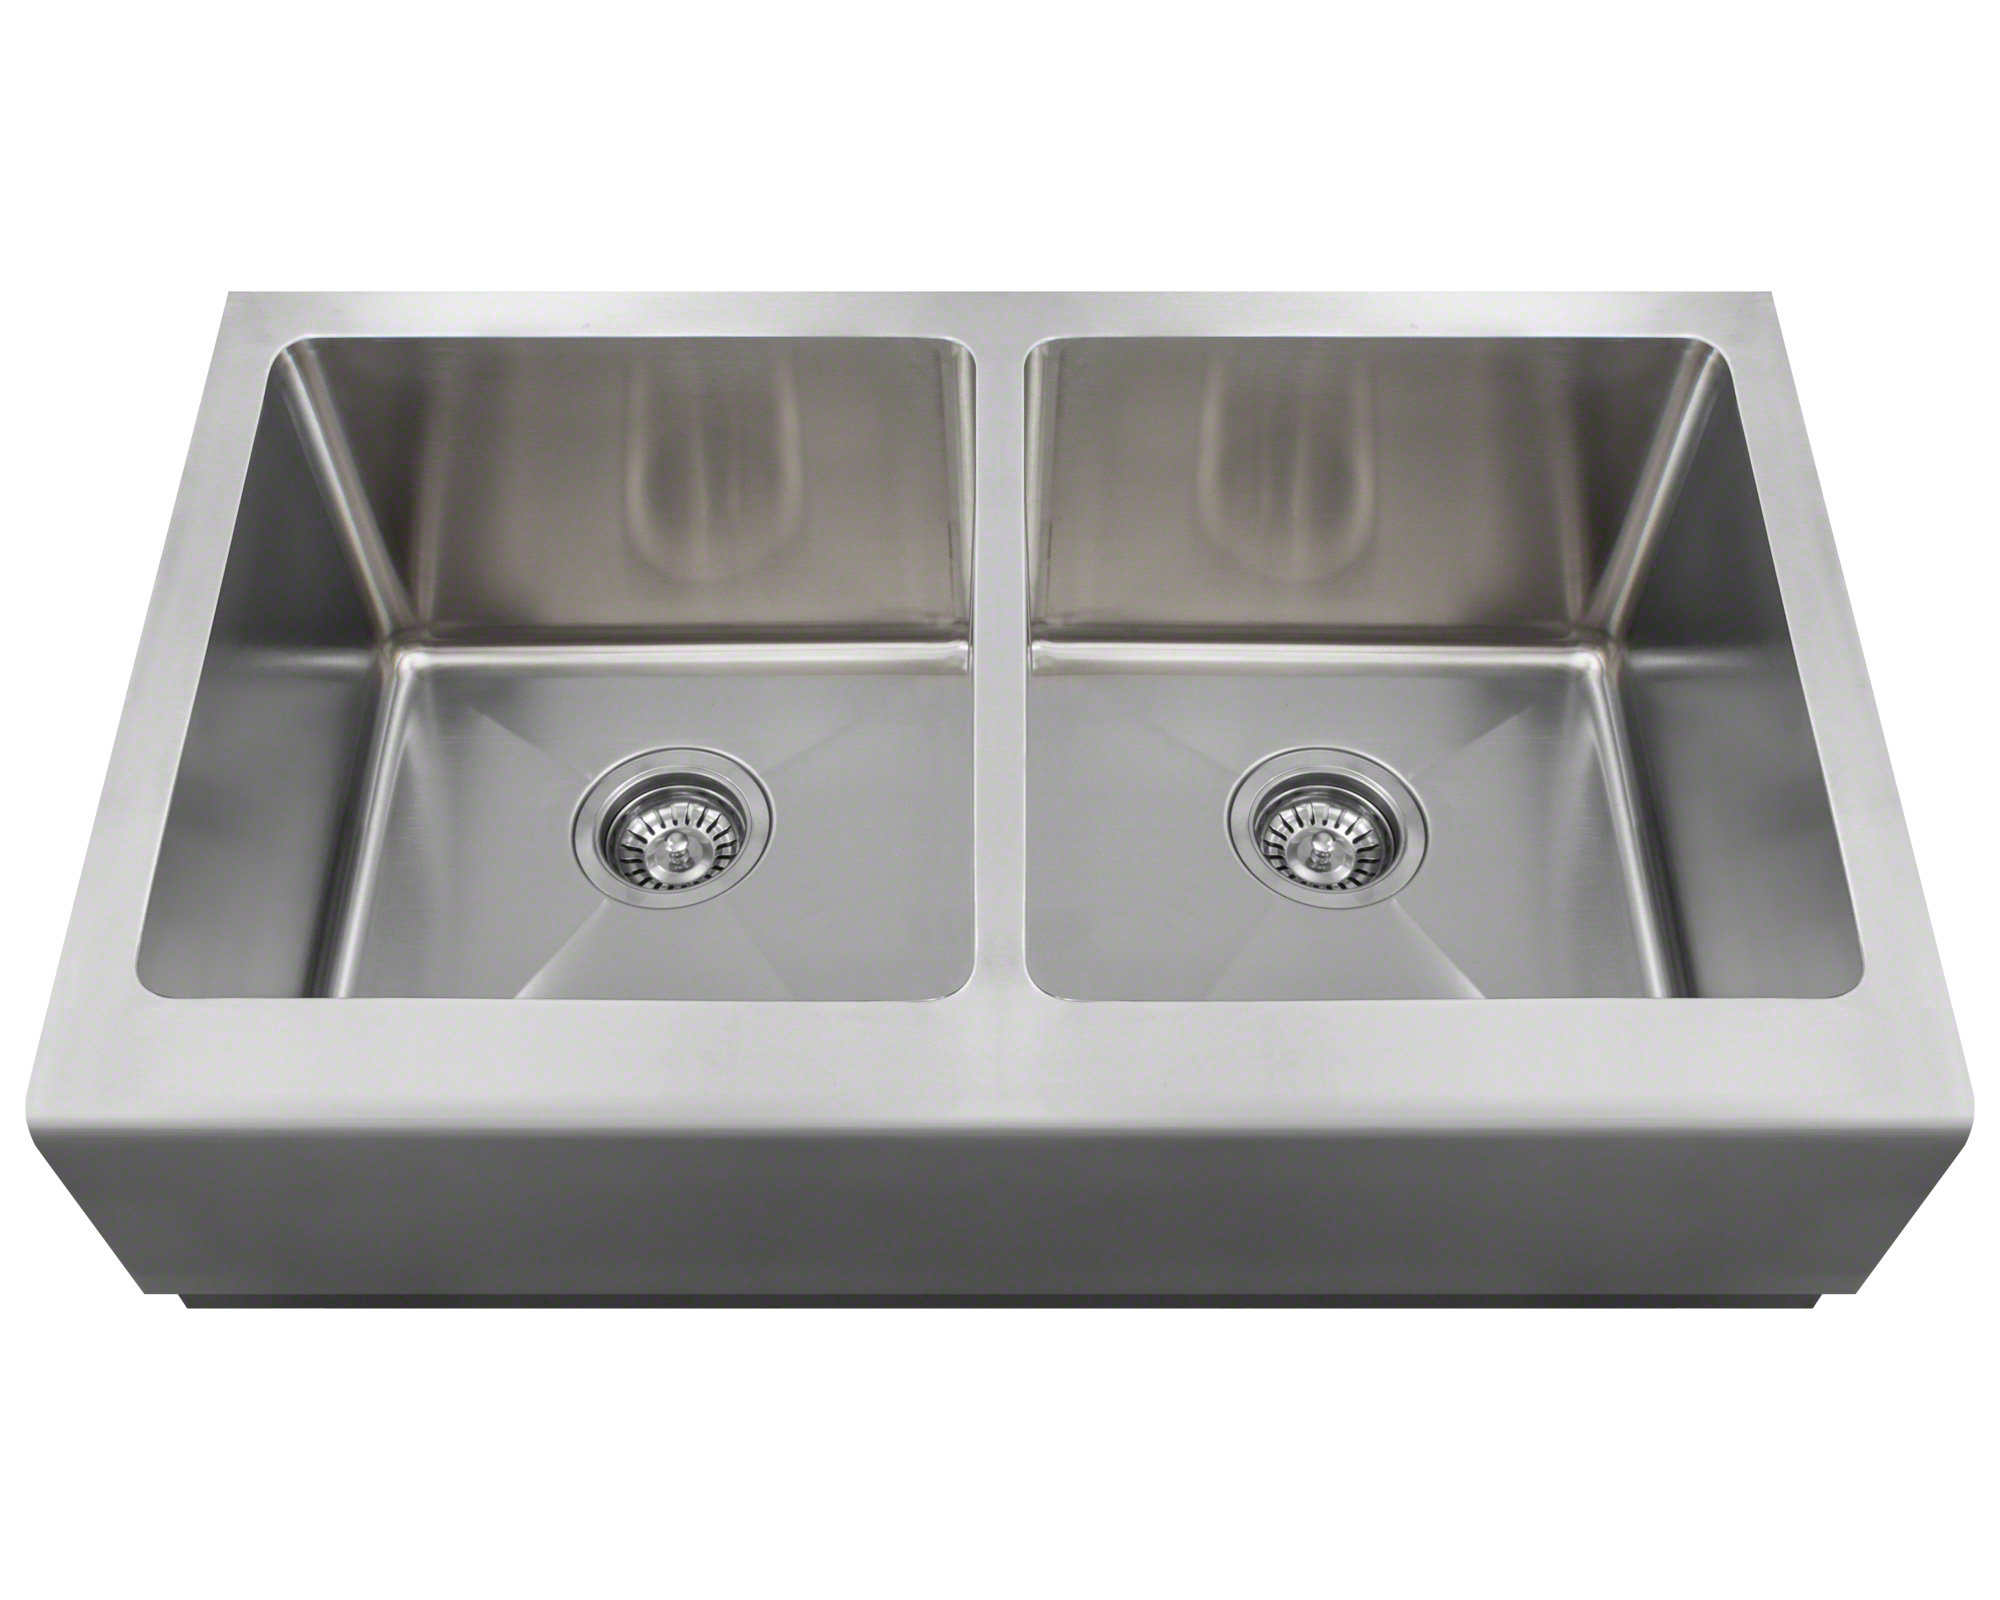 P604 Double Equal Bowl Apron Sink